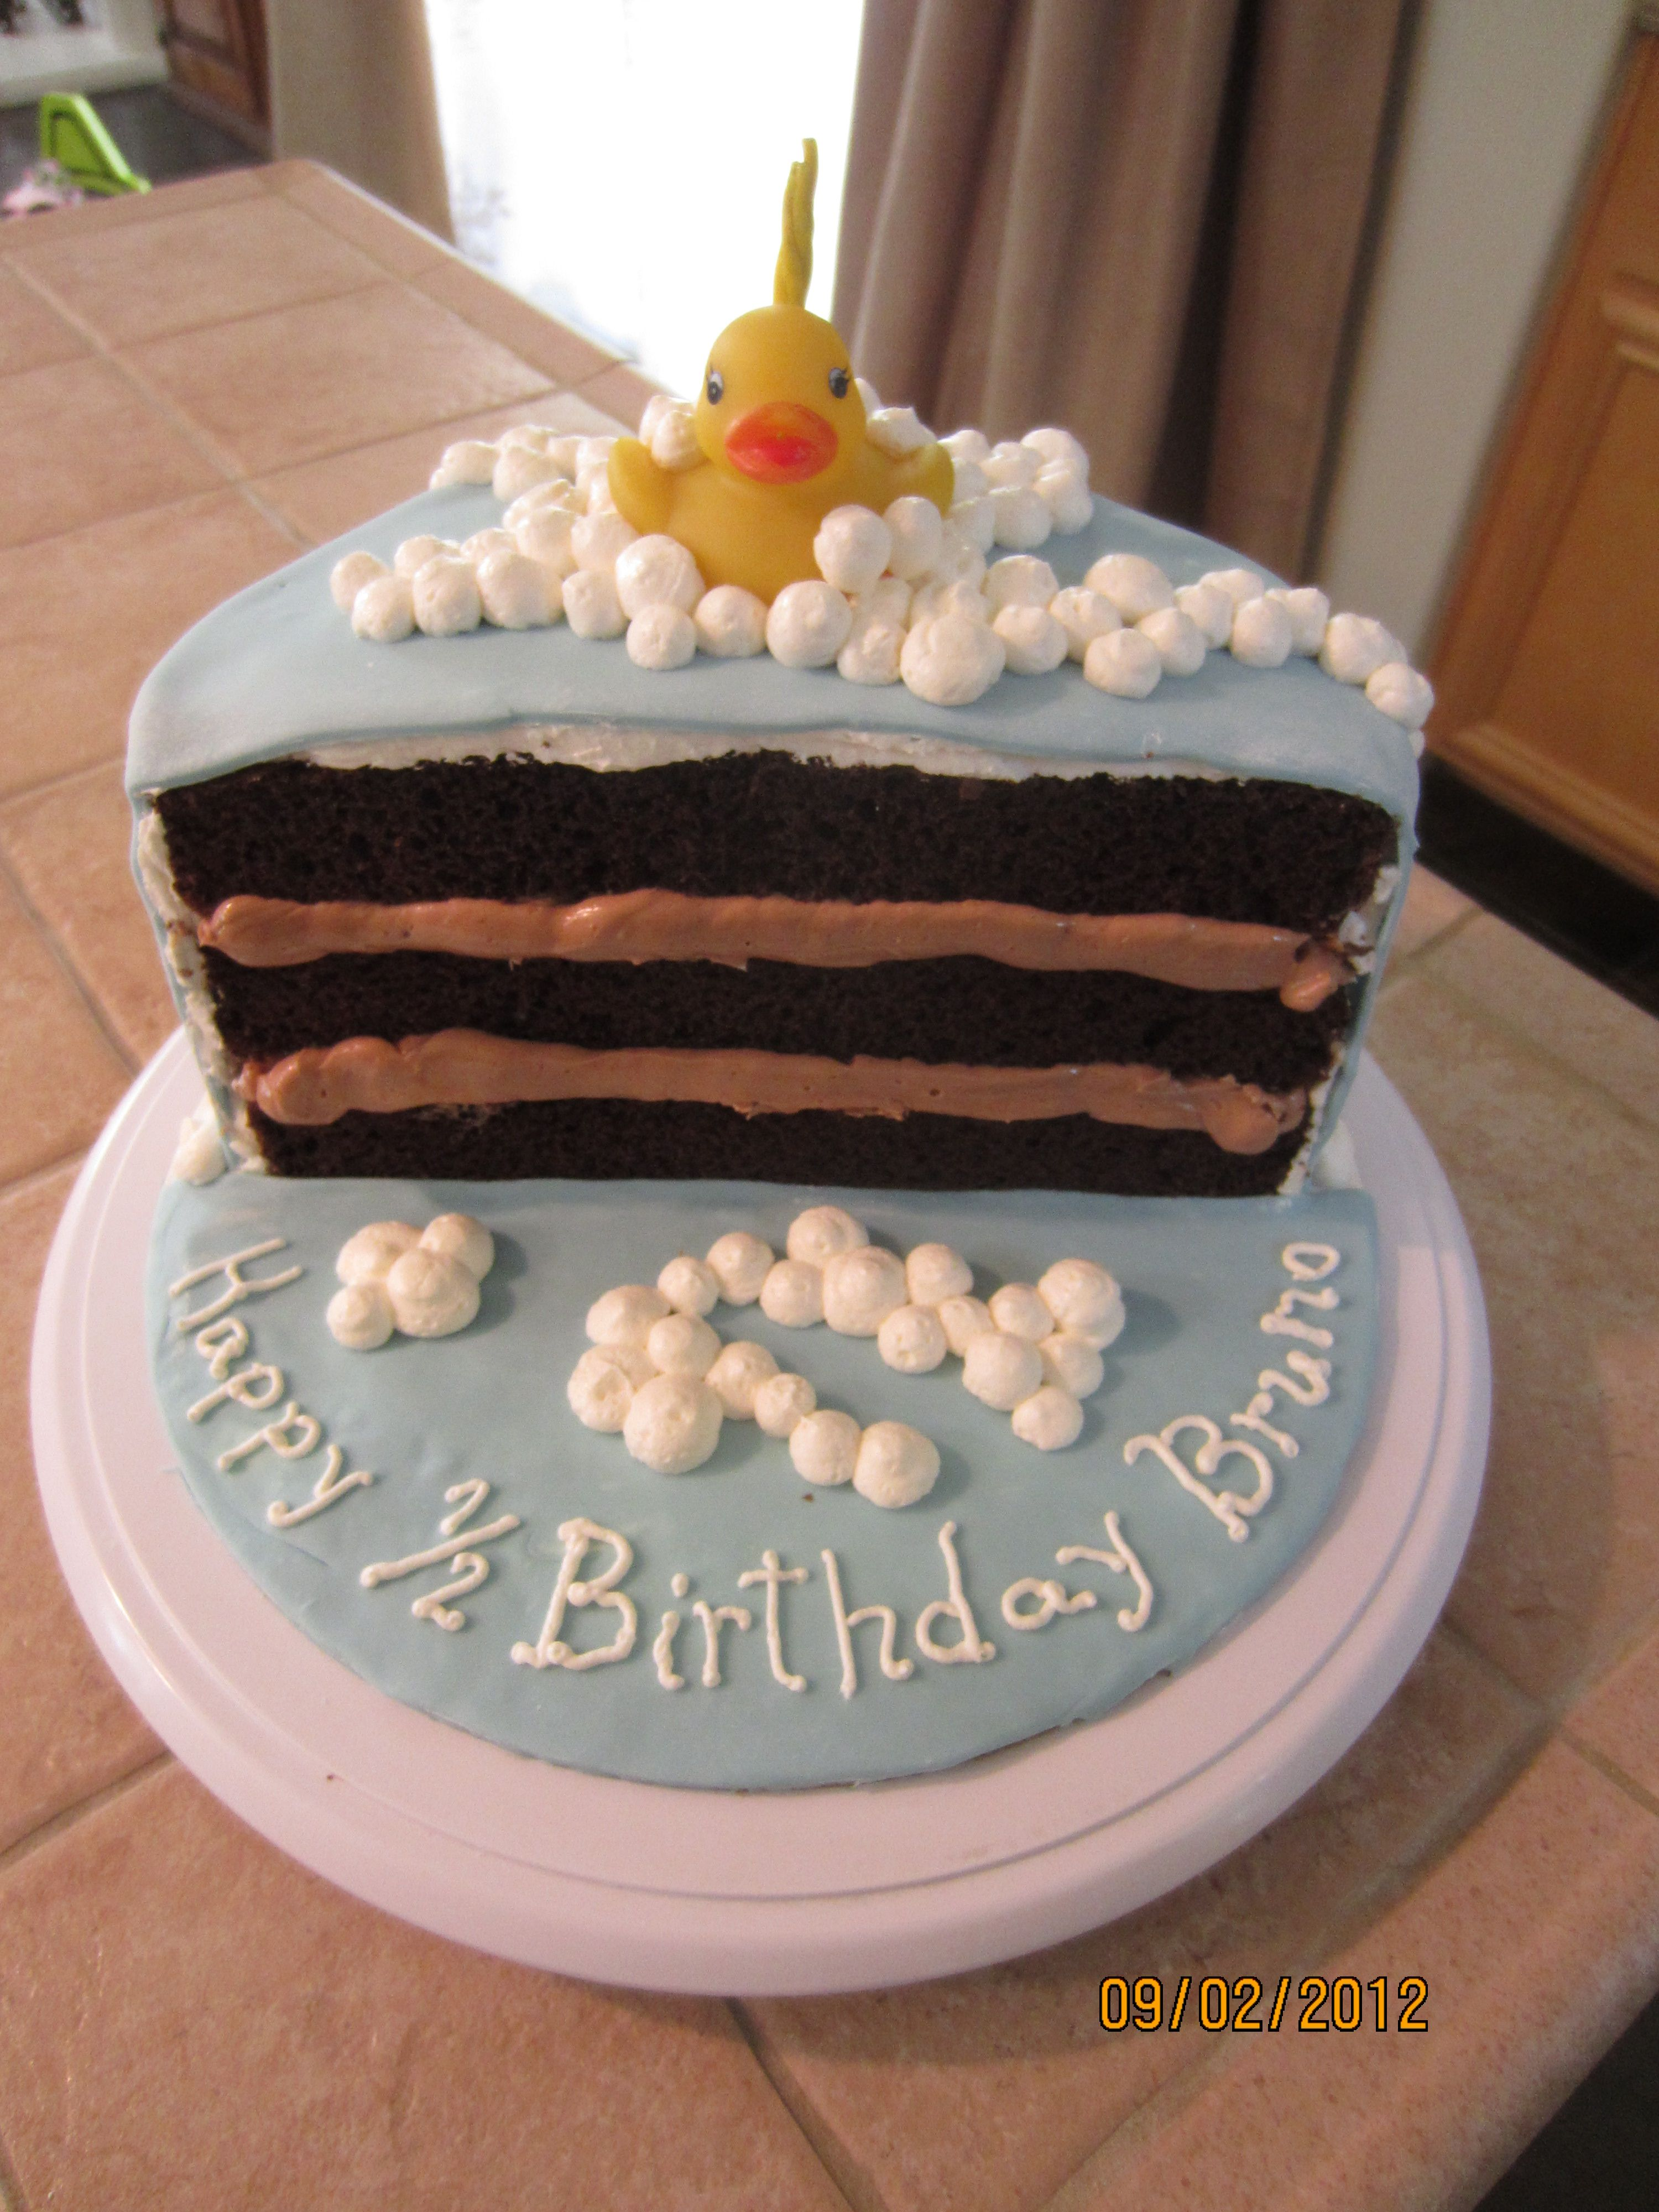 I Like How You Can See The Layers On Inside Of Cake Here And Writing In Front It